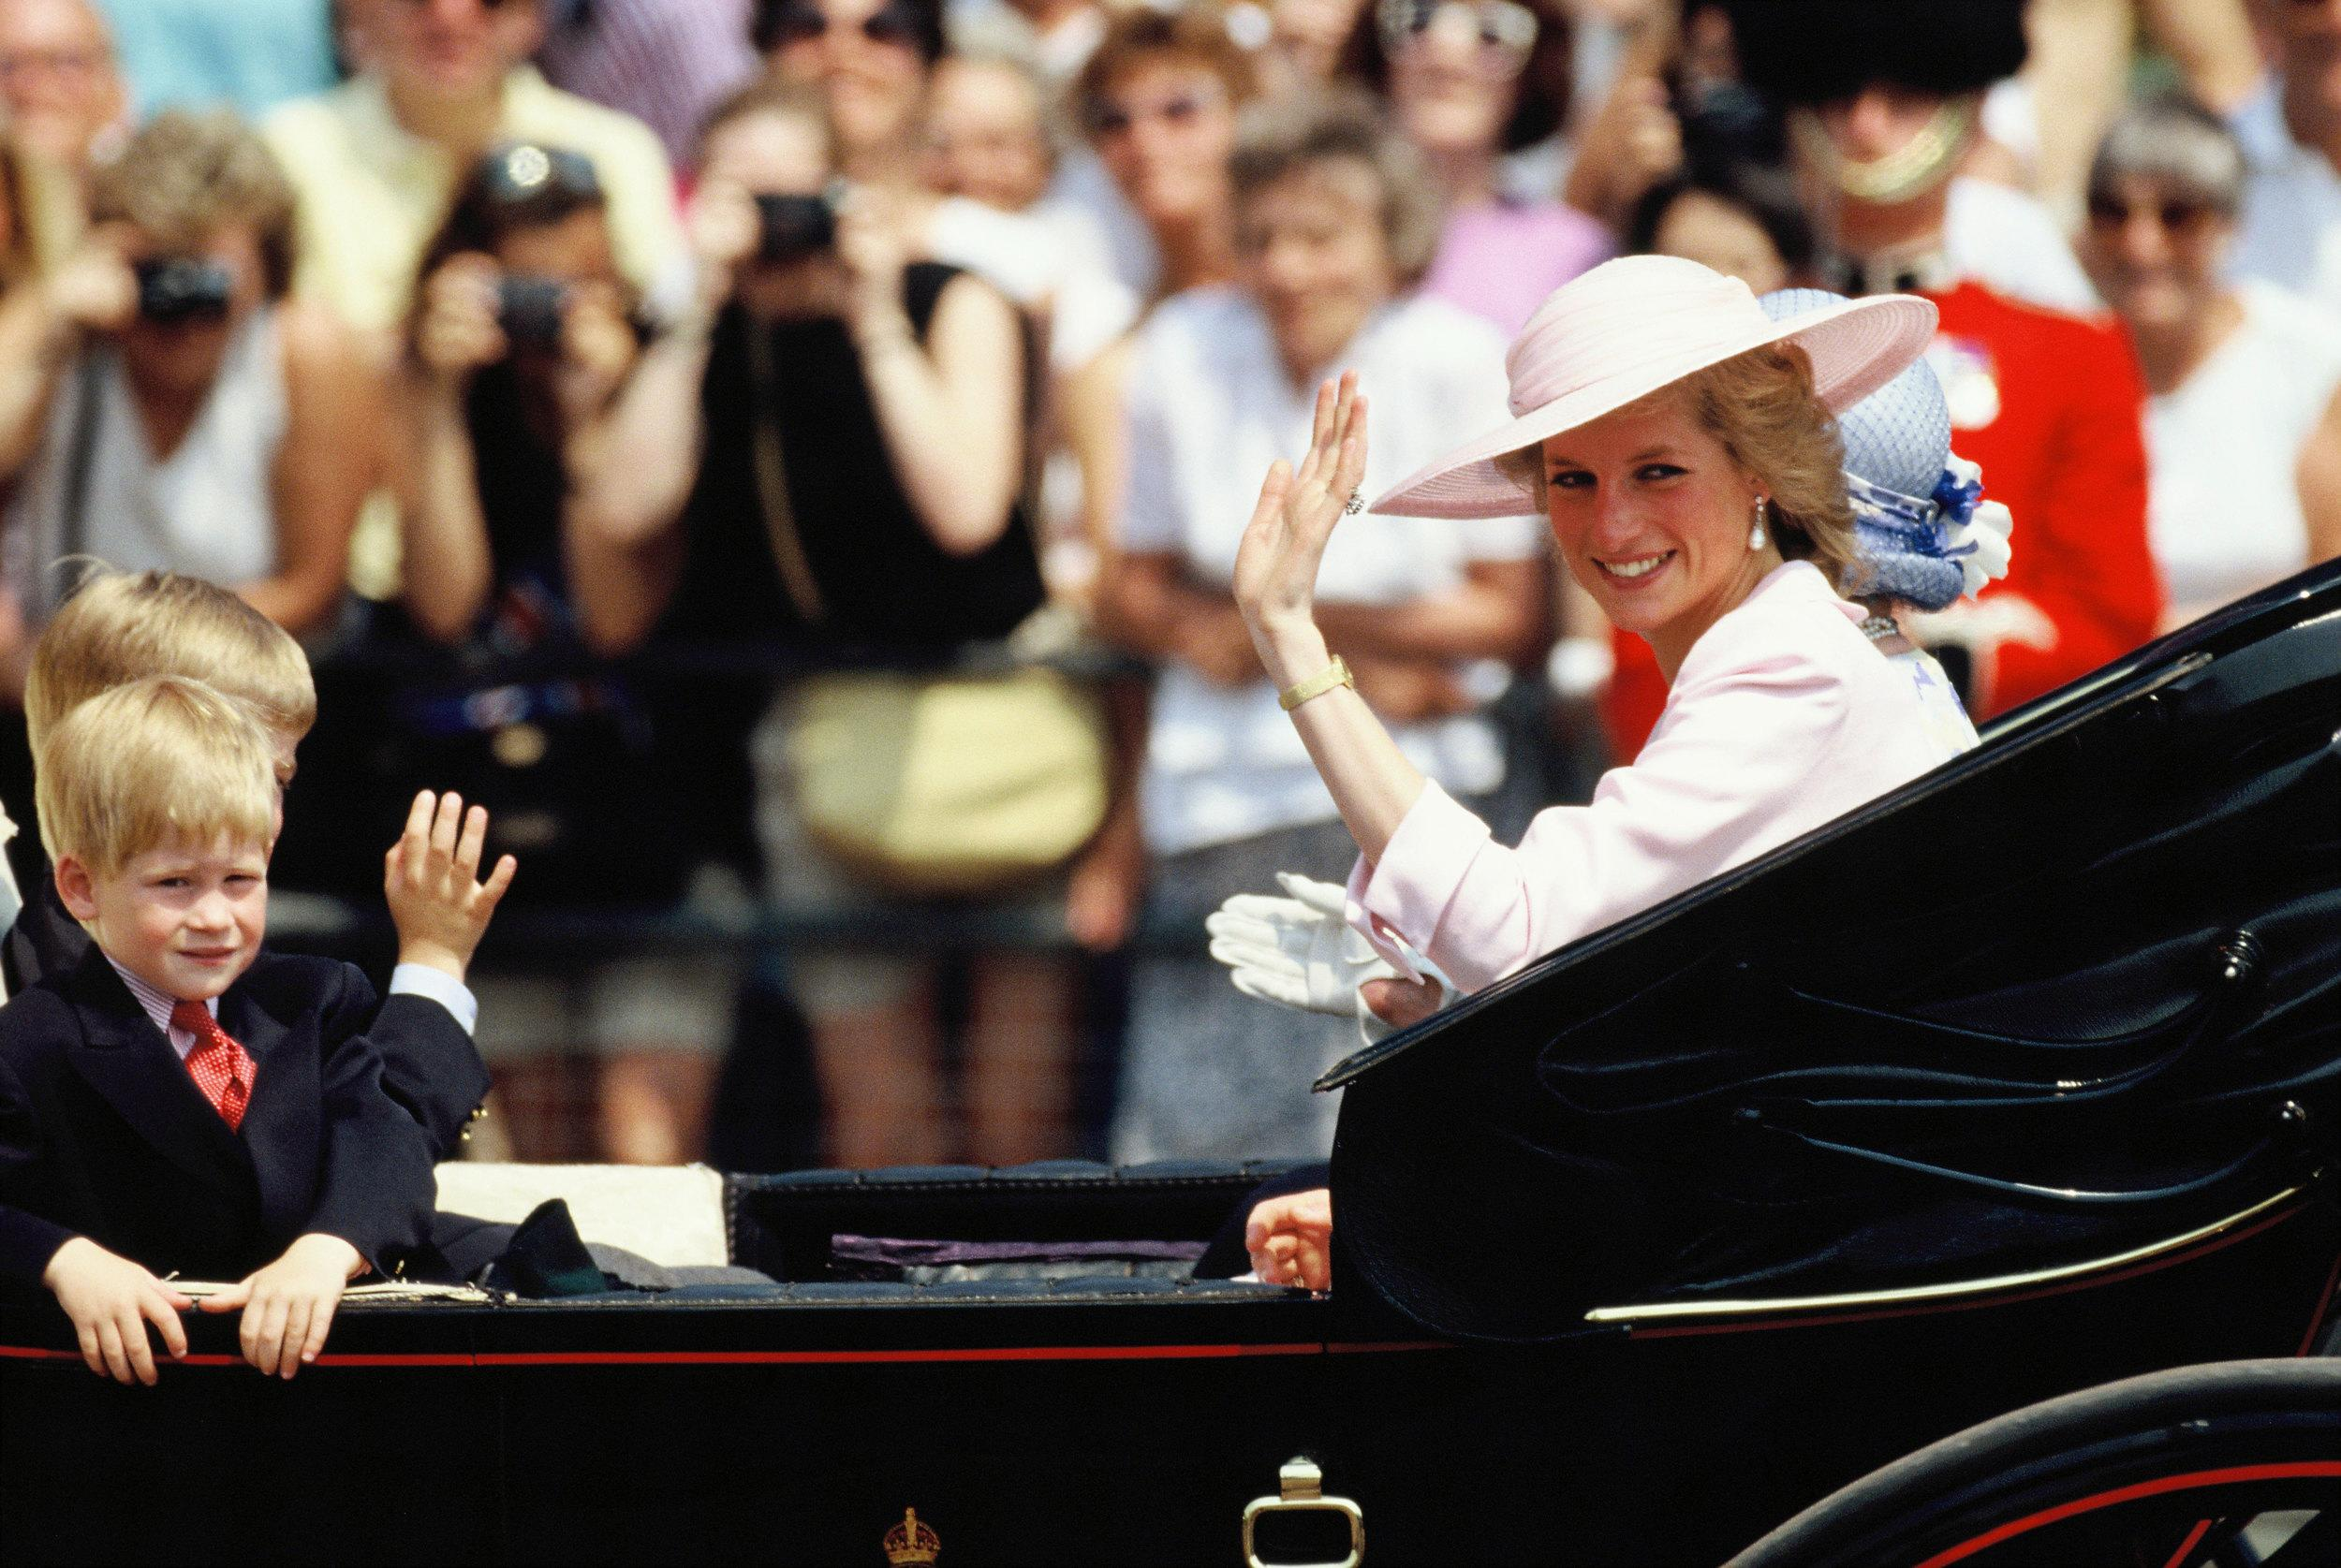 LONDON, UNITED KINGDOM - JUNE 17:  The Queen Mother and Diana, Princess Of Wales, with her sons Prince William and Prince Harry in an open carriage for Trooping the Colour Procession on June 17, 1989 in London, England.  (Photo by Georges De Keerle/Getty Images)